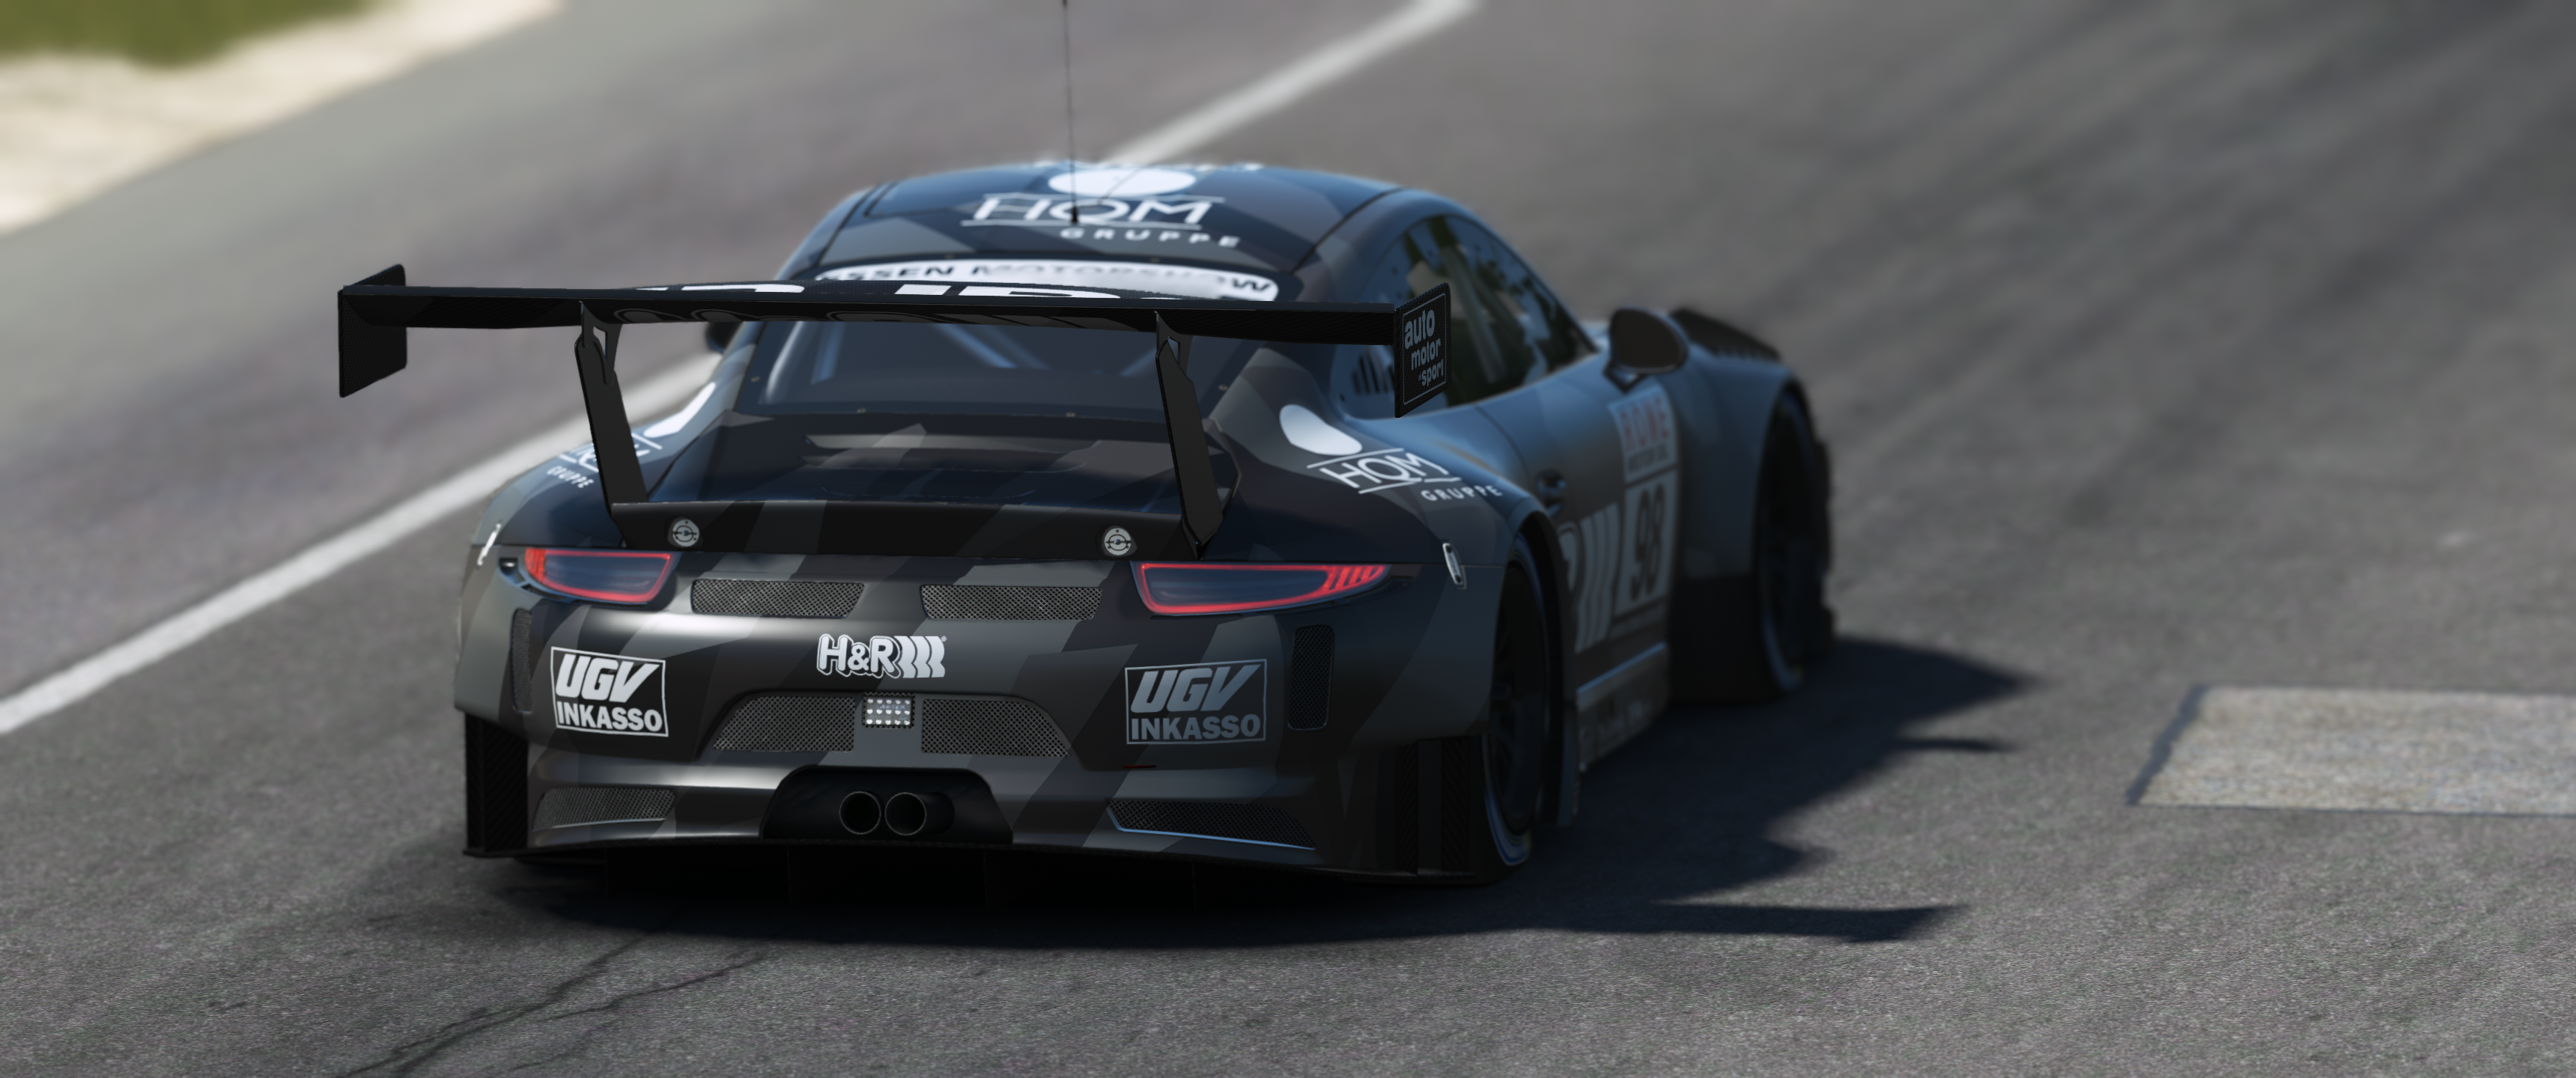 rFactor2 2019-02-12 00-21-51-95.png